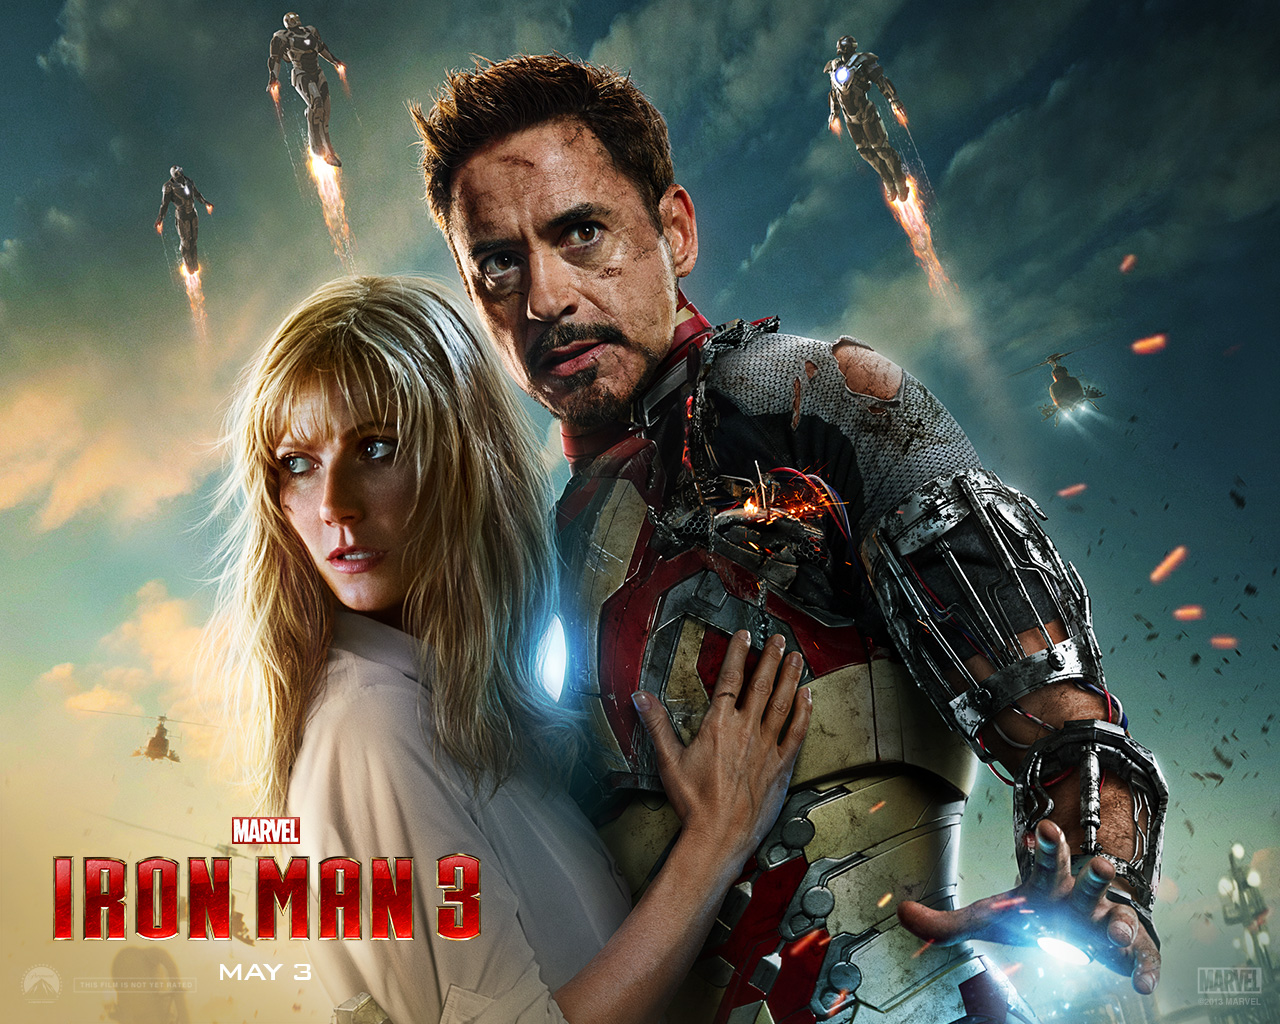 Iron Man 3 wallpaper 1280x1024 011